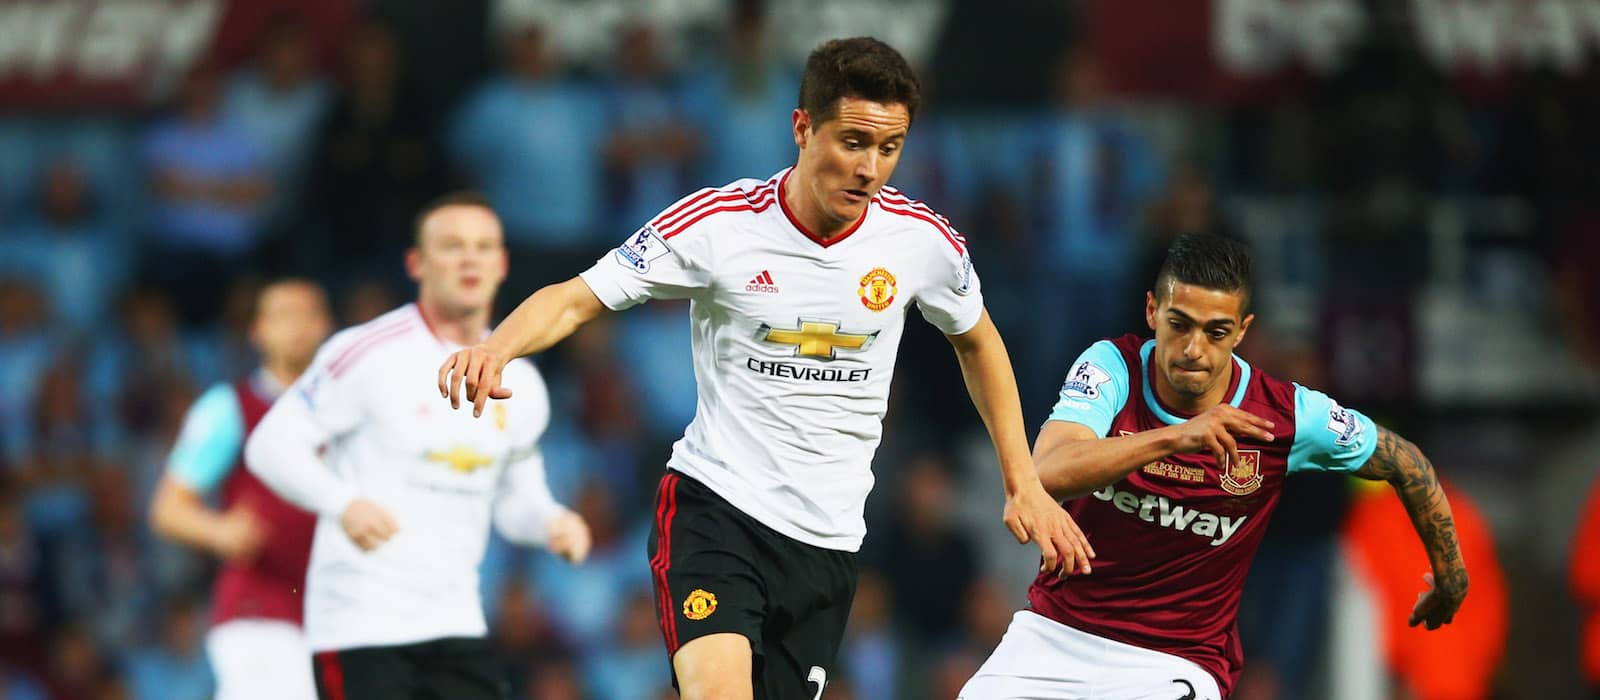 West Ham United 3-2 Manchester United: Anthony Martial scores twice but it's not enough for United